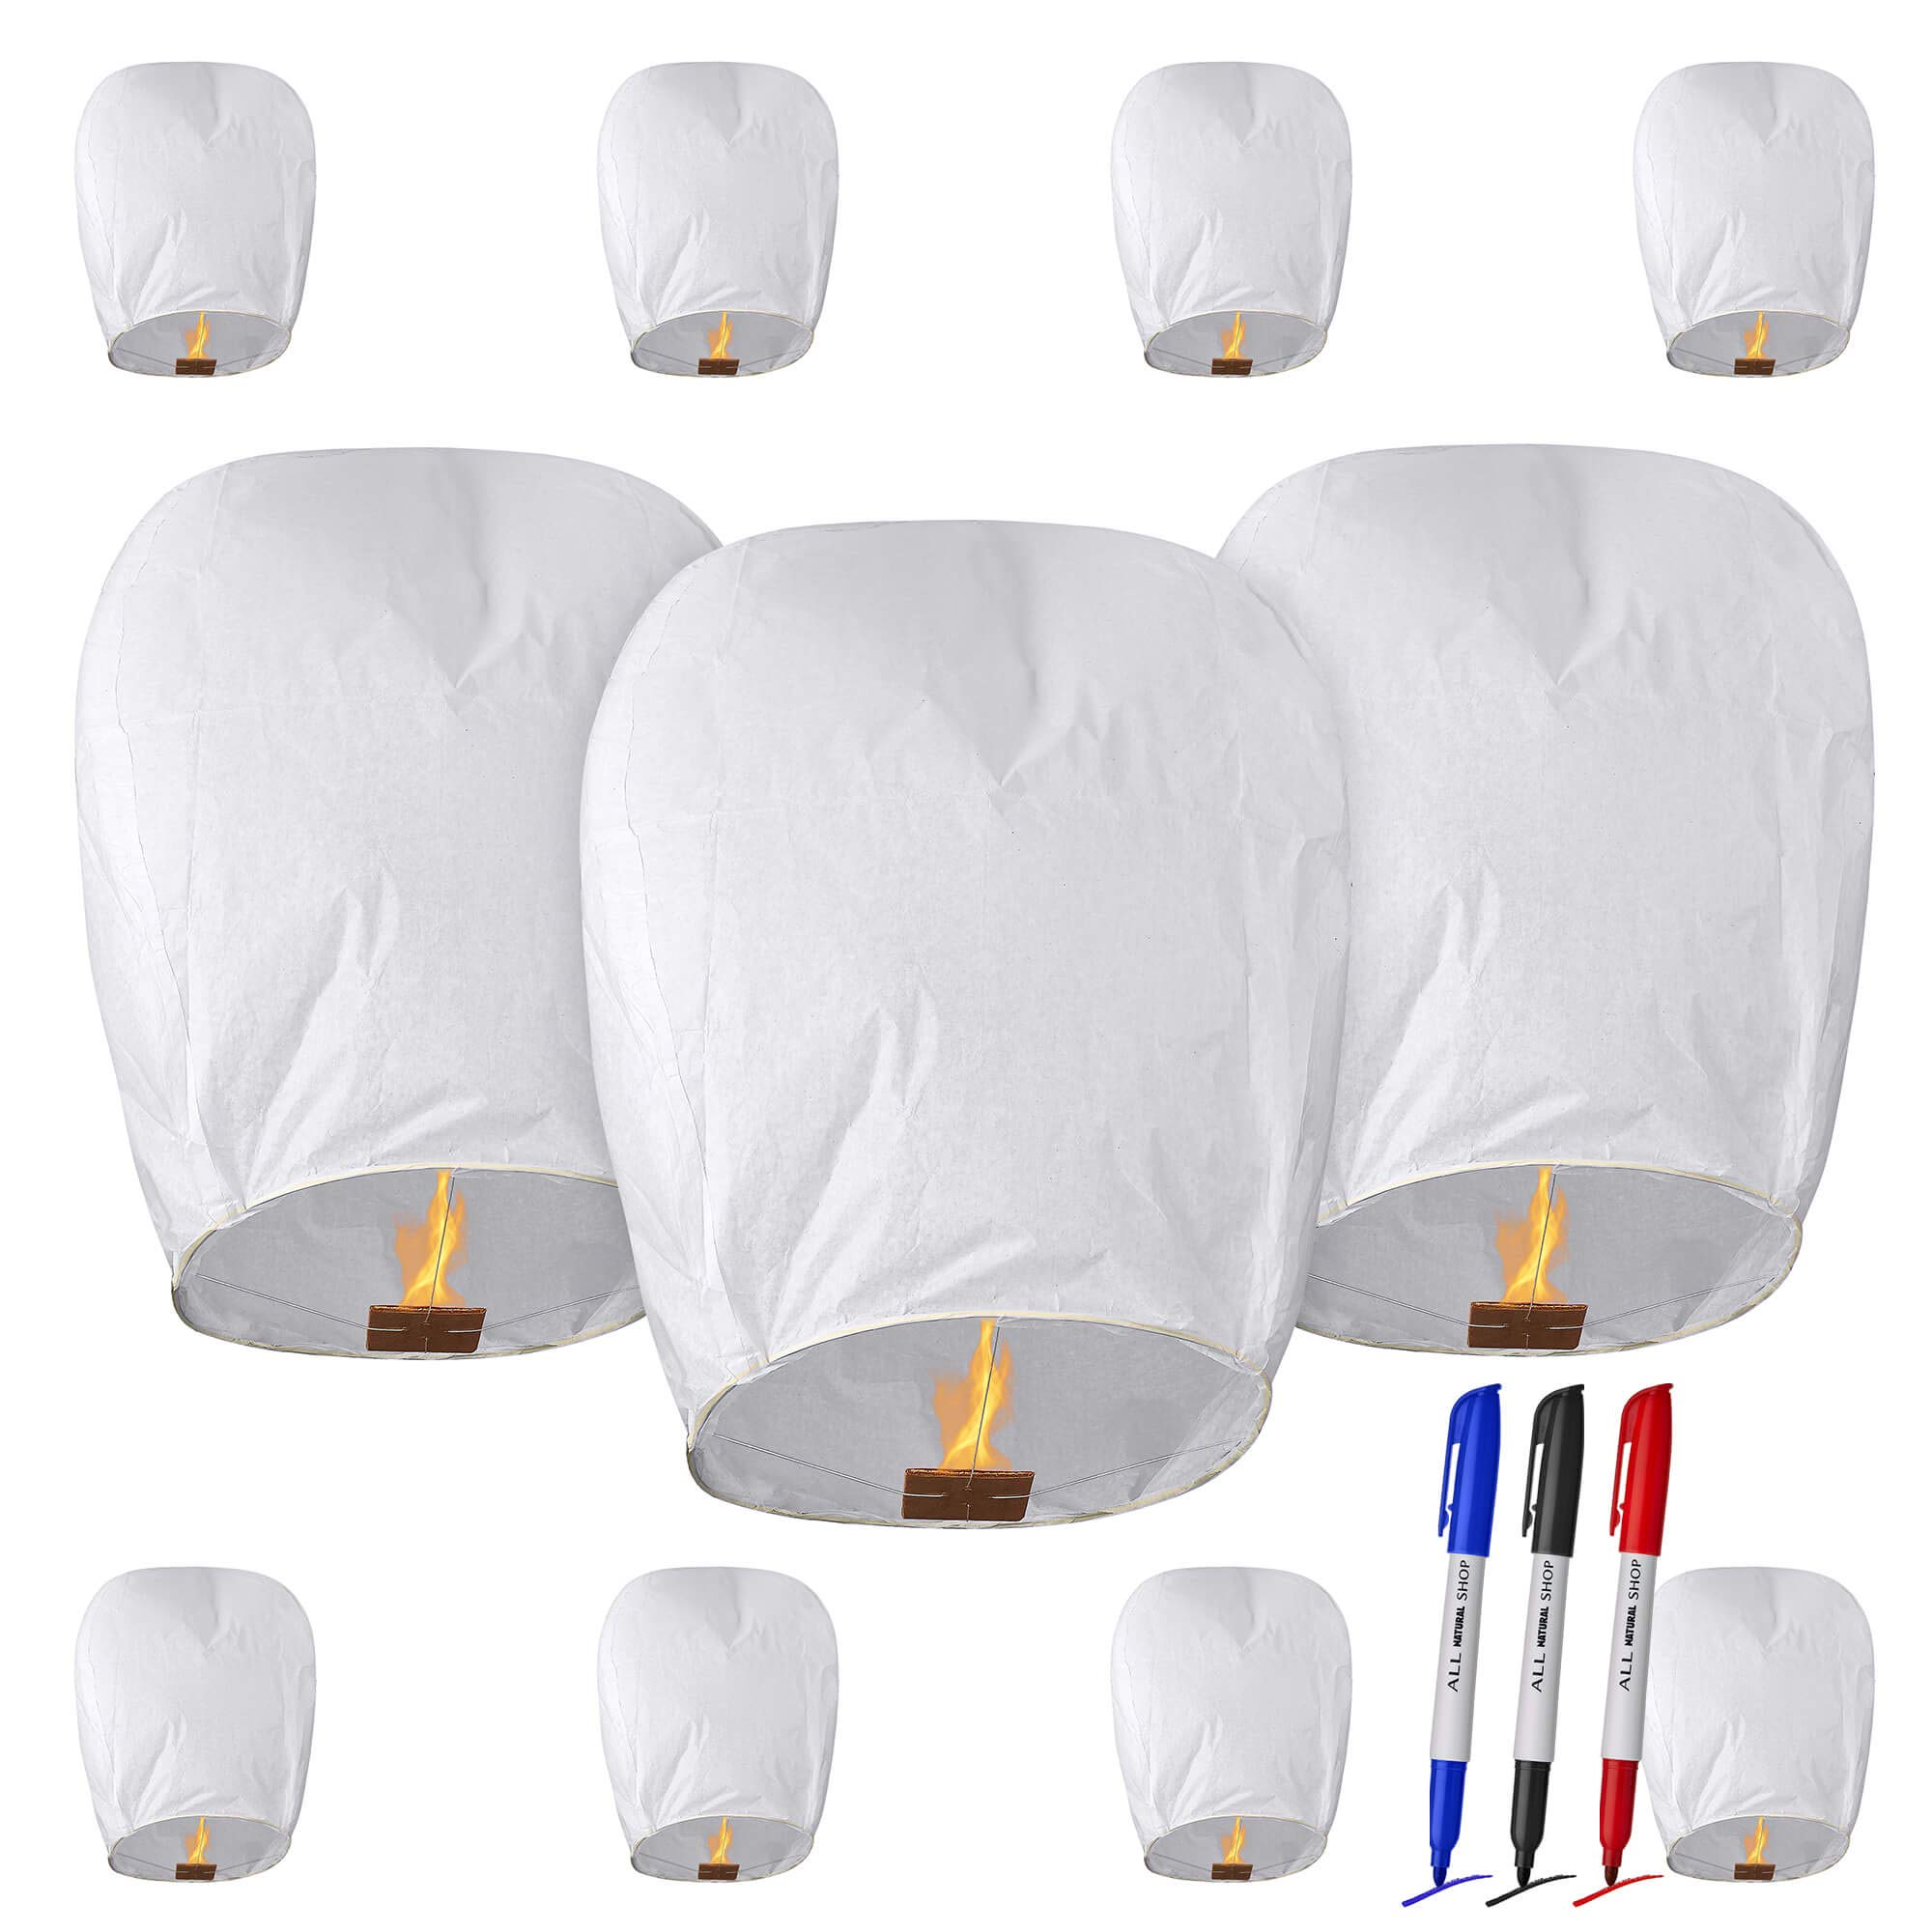 All Natural Shop 11 Pack White Chinese Sky Lanterns to Release in Sky - Eco Friendly, 100% Biodegradable. Wire-Free Paper Japanese Prime Lantern by All Natural Shop